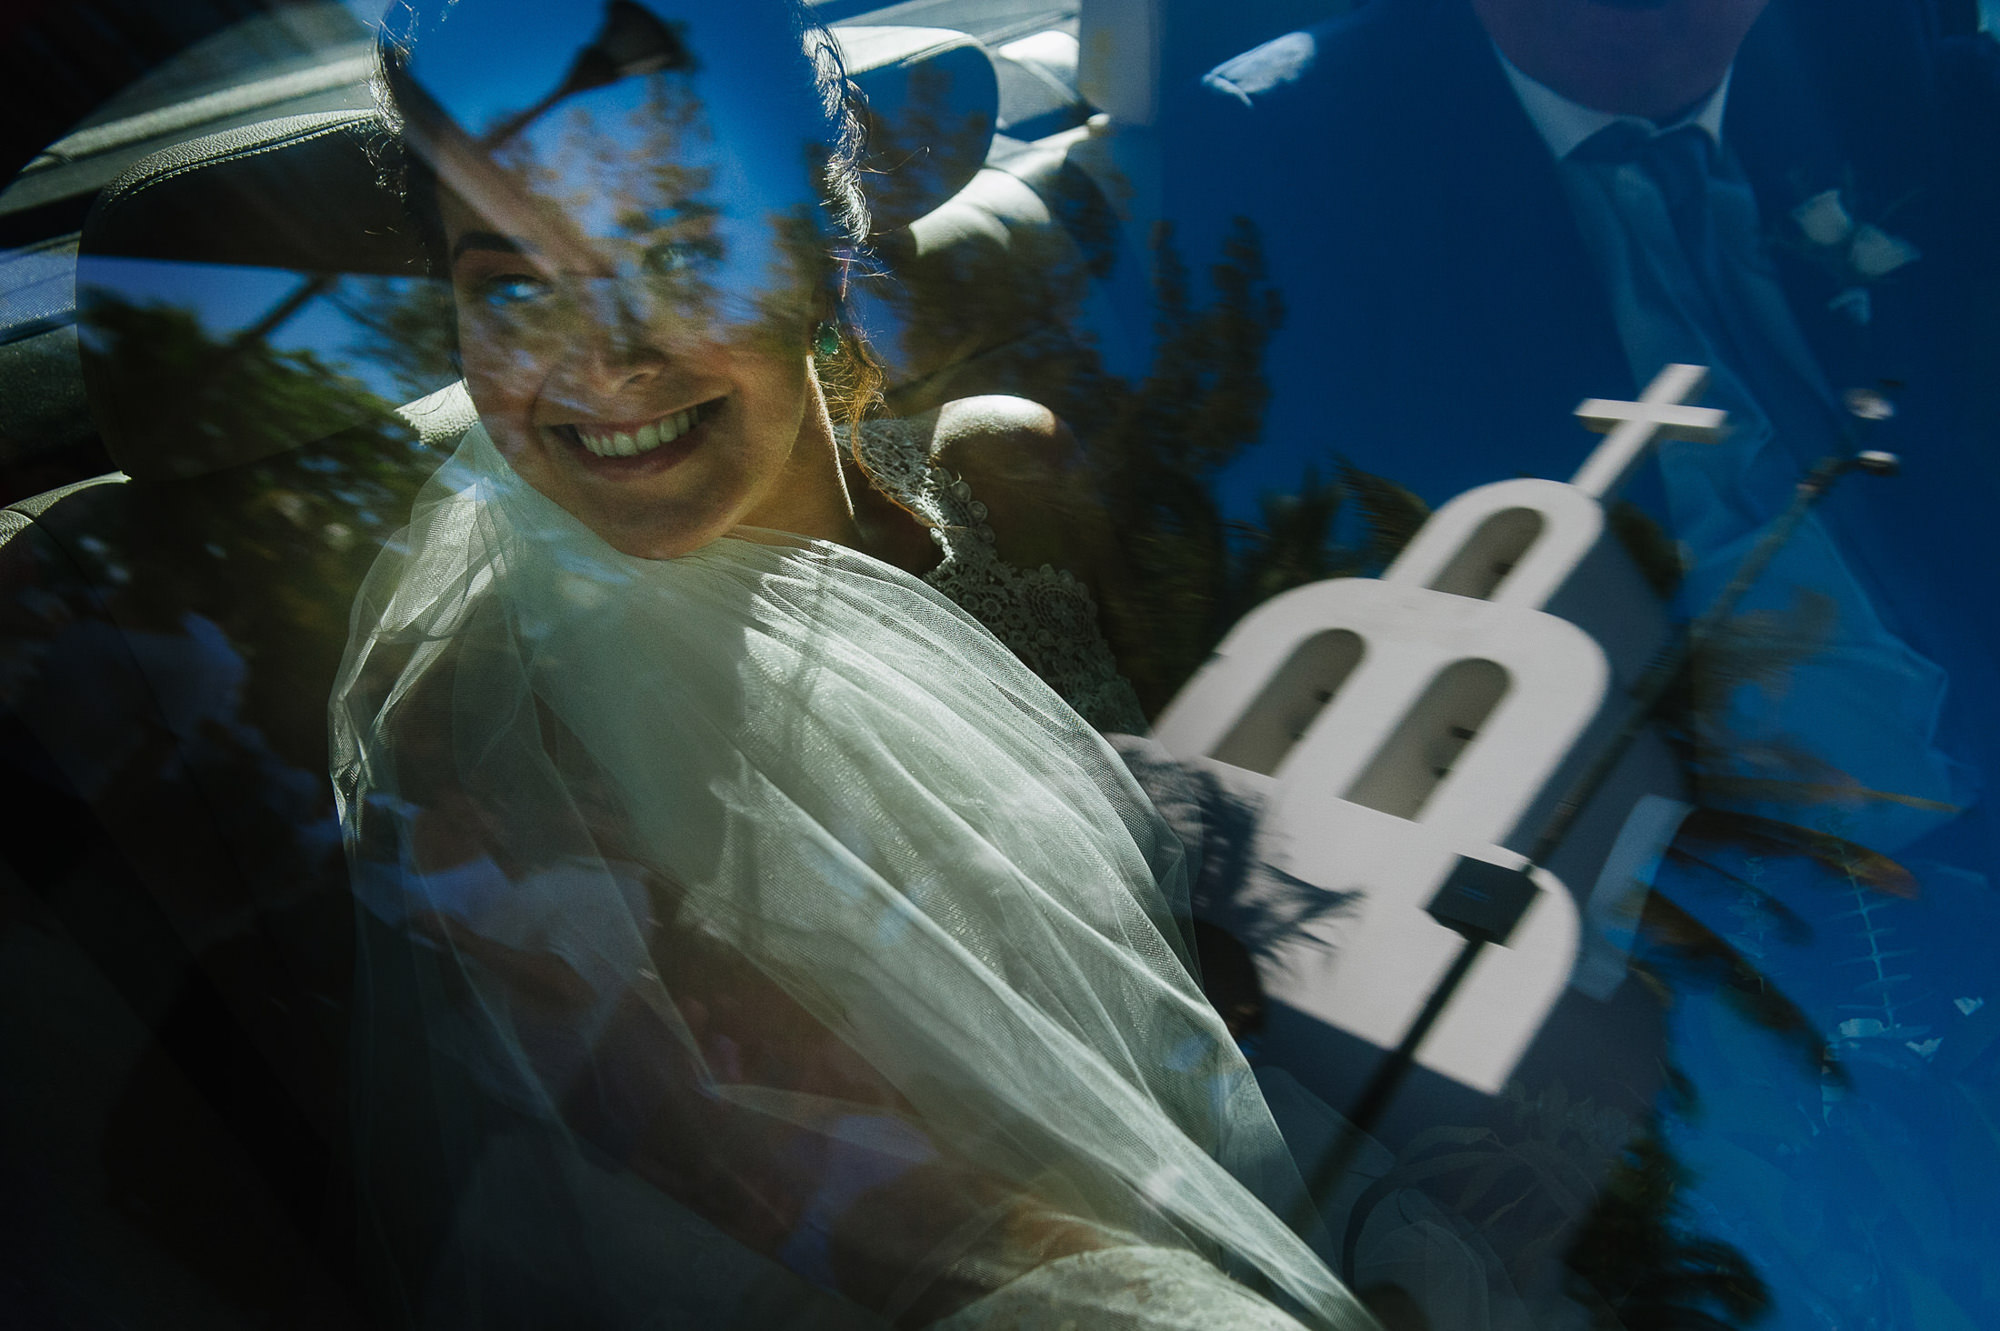 Bride and groom in limo with church reflection, by Citlalli Rico